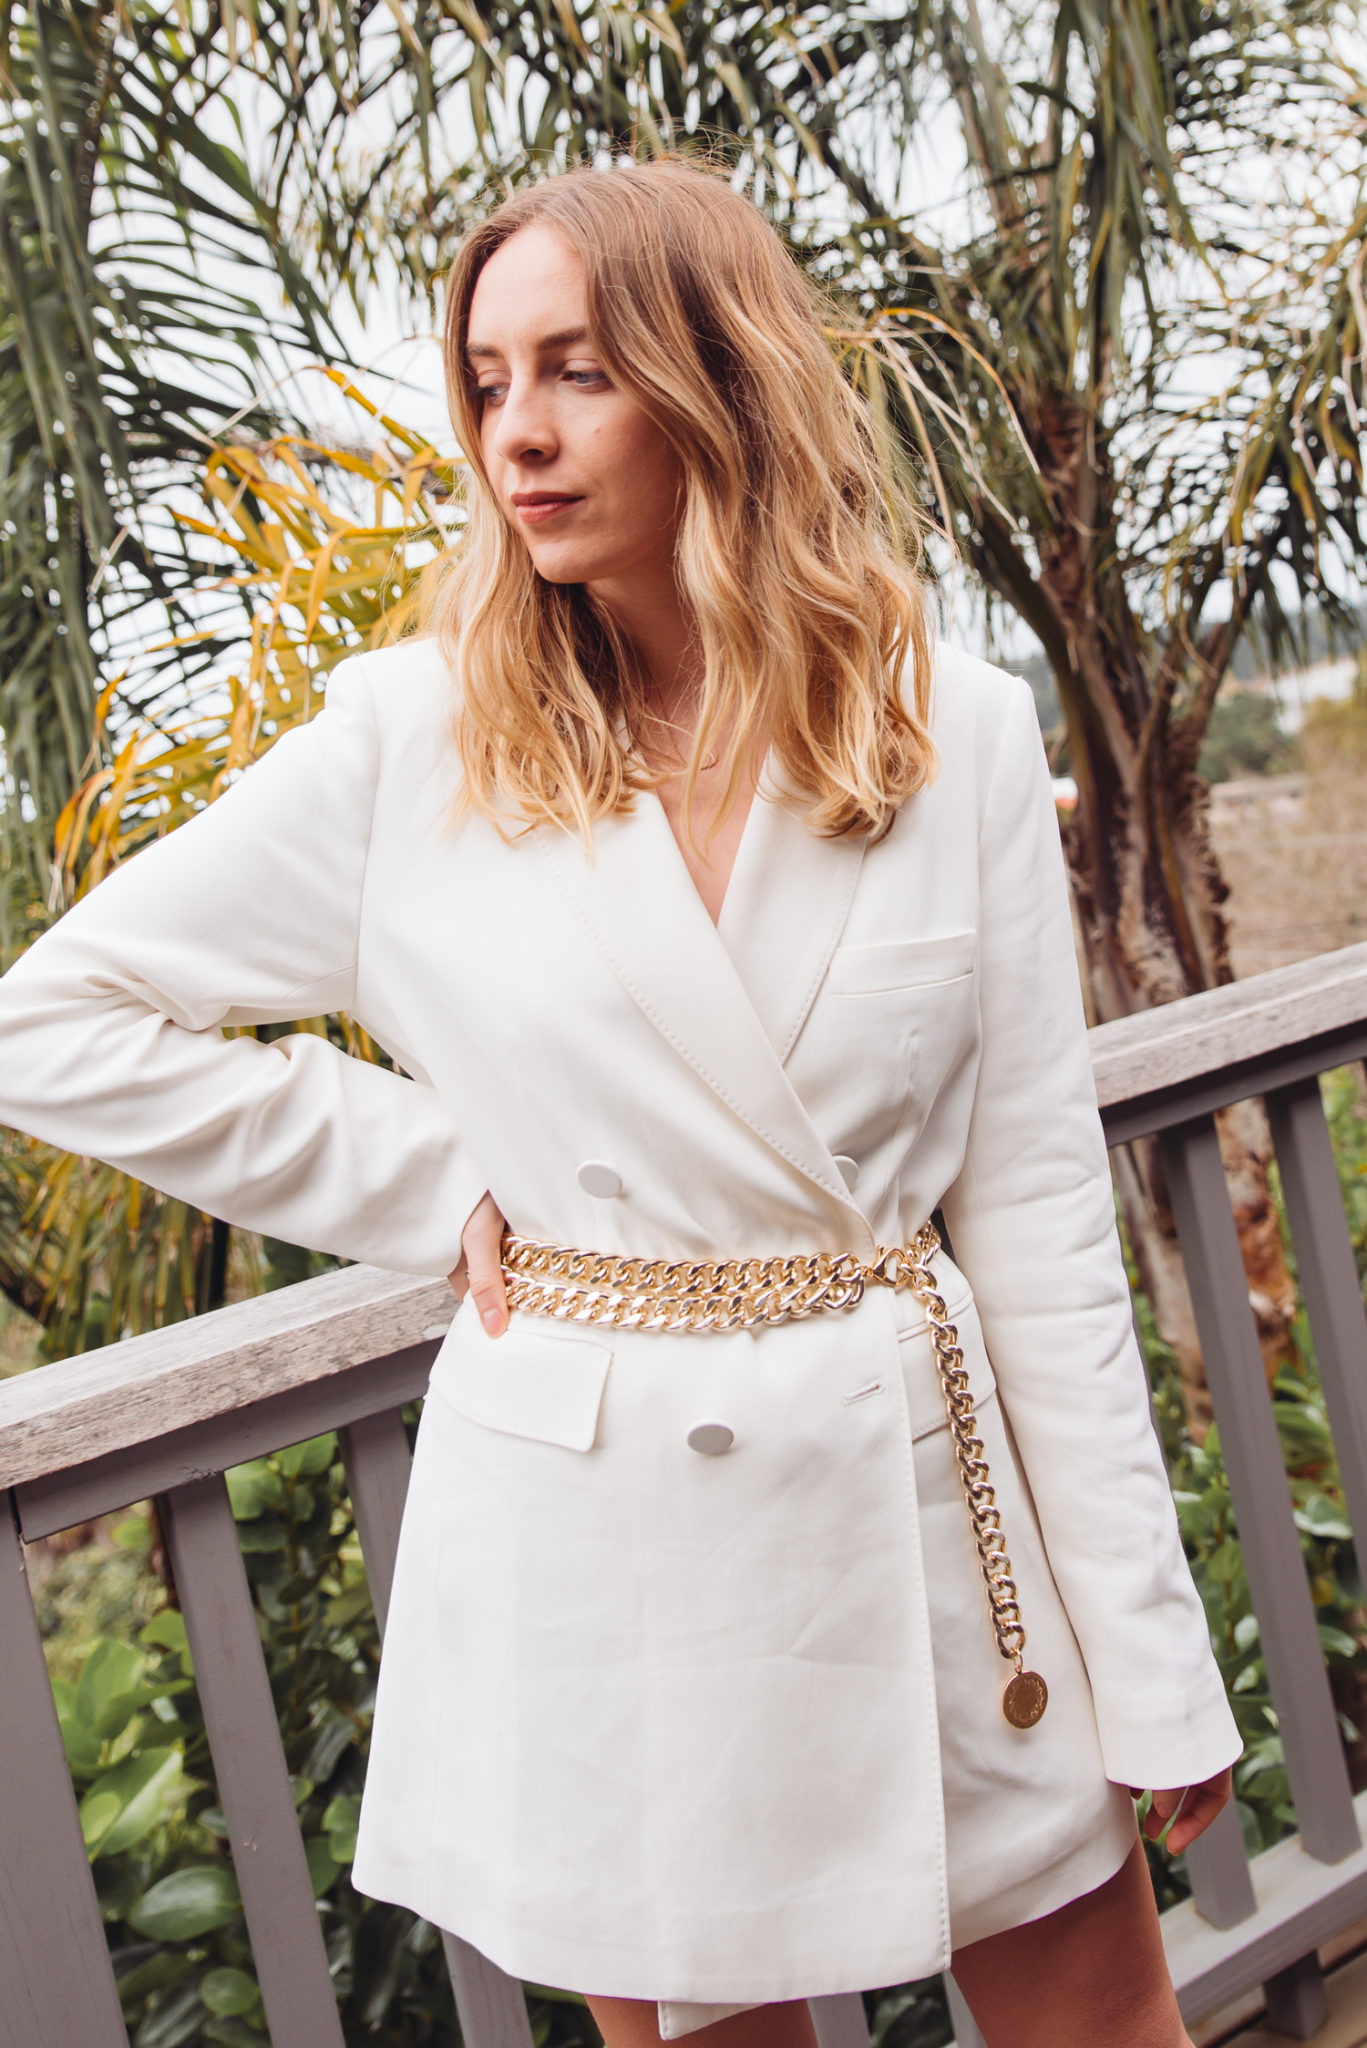 Witchery Belted Blazer, Chain Belt and Urban Outfitters White Boots | Stoleninspiration.com NZ Fashion Blogger.jpg1